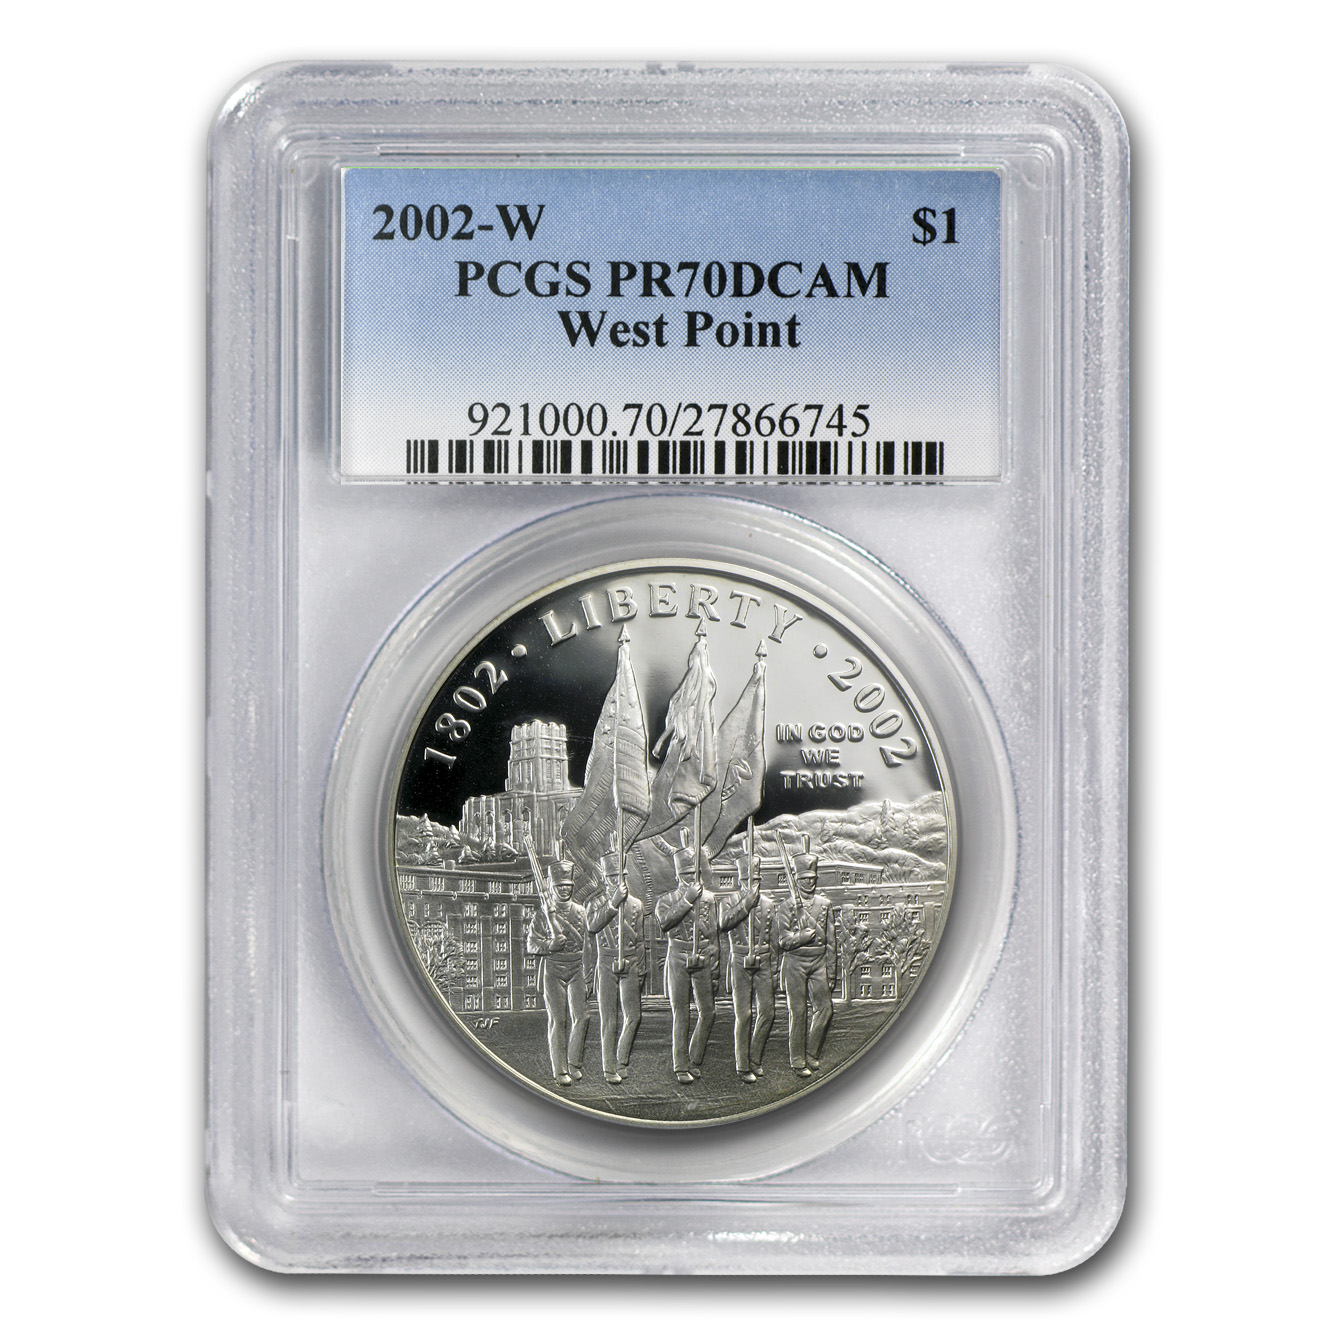 2002-W West Point Bicentennial $1 Silver Commem PR-70 PCGS